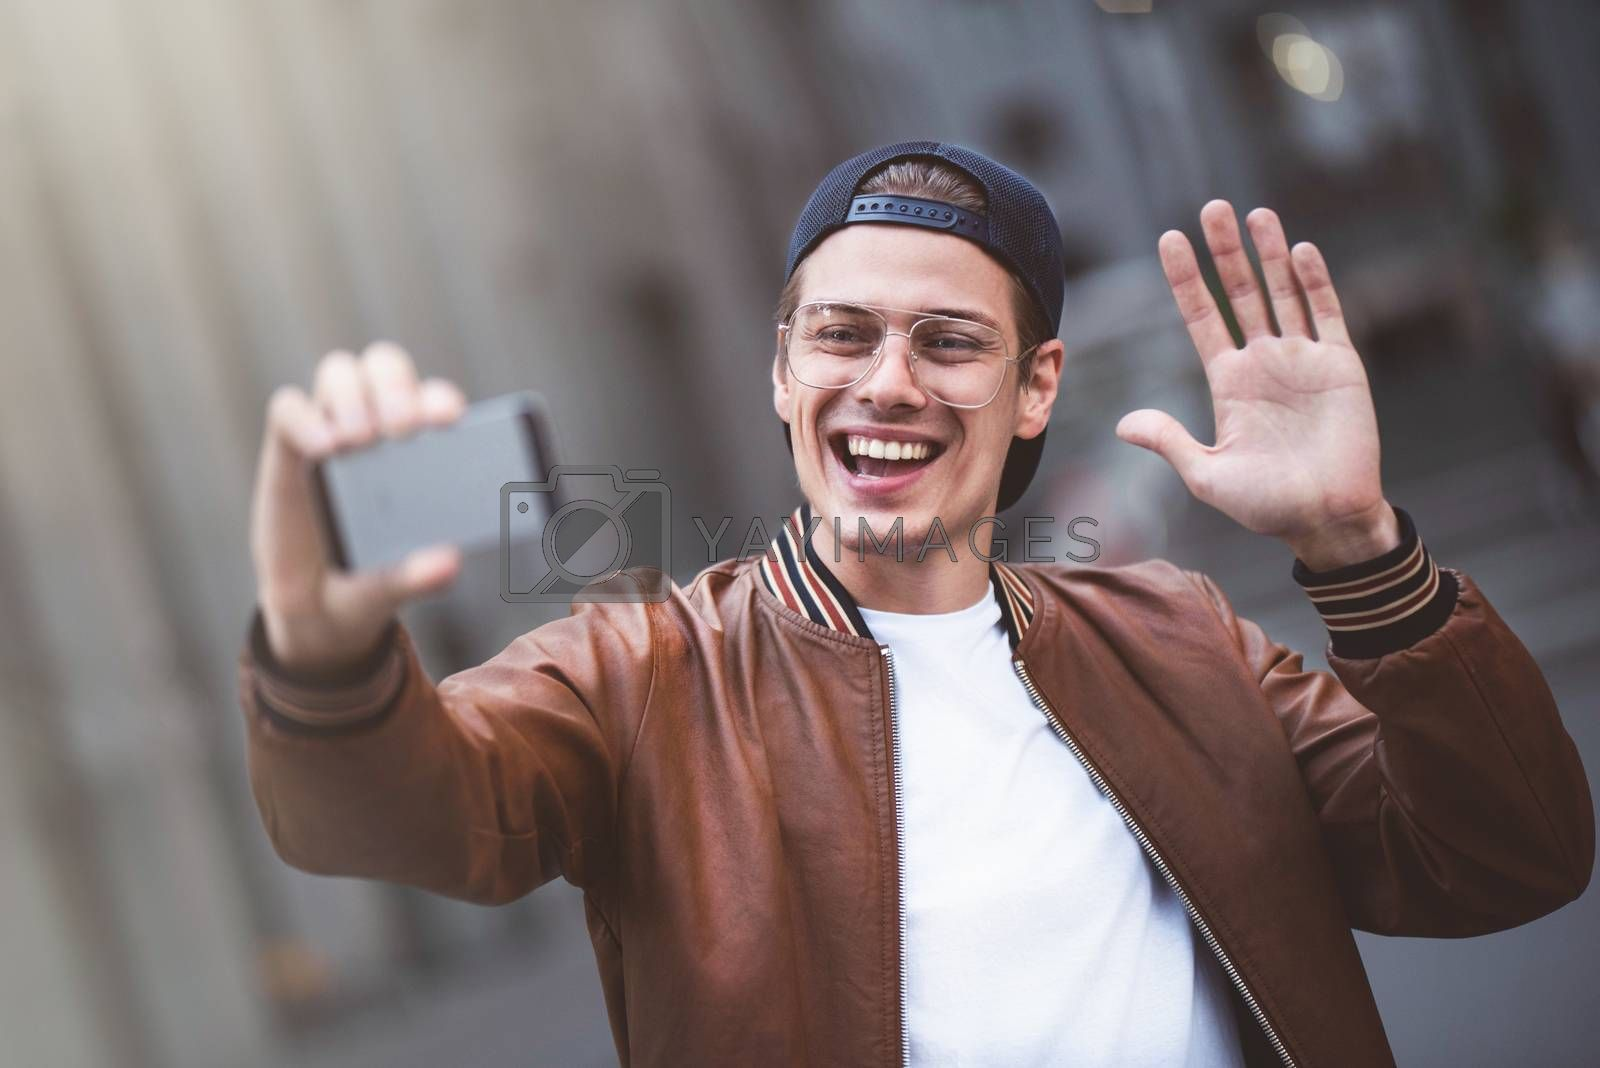 Selfie mania Excited young guy is making selfie on a camera. He is wearing casual trendy wear and snap back